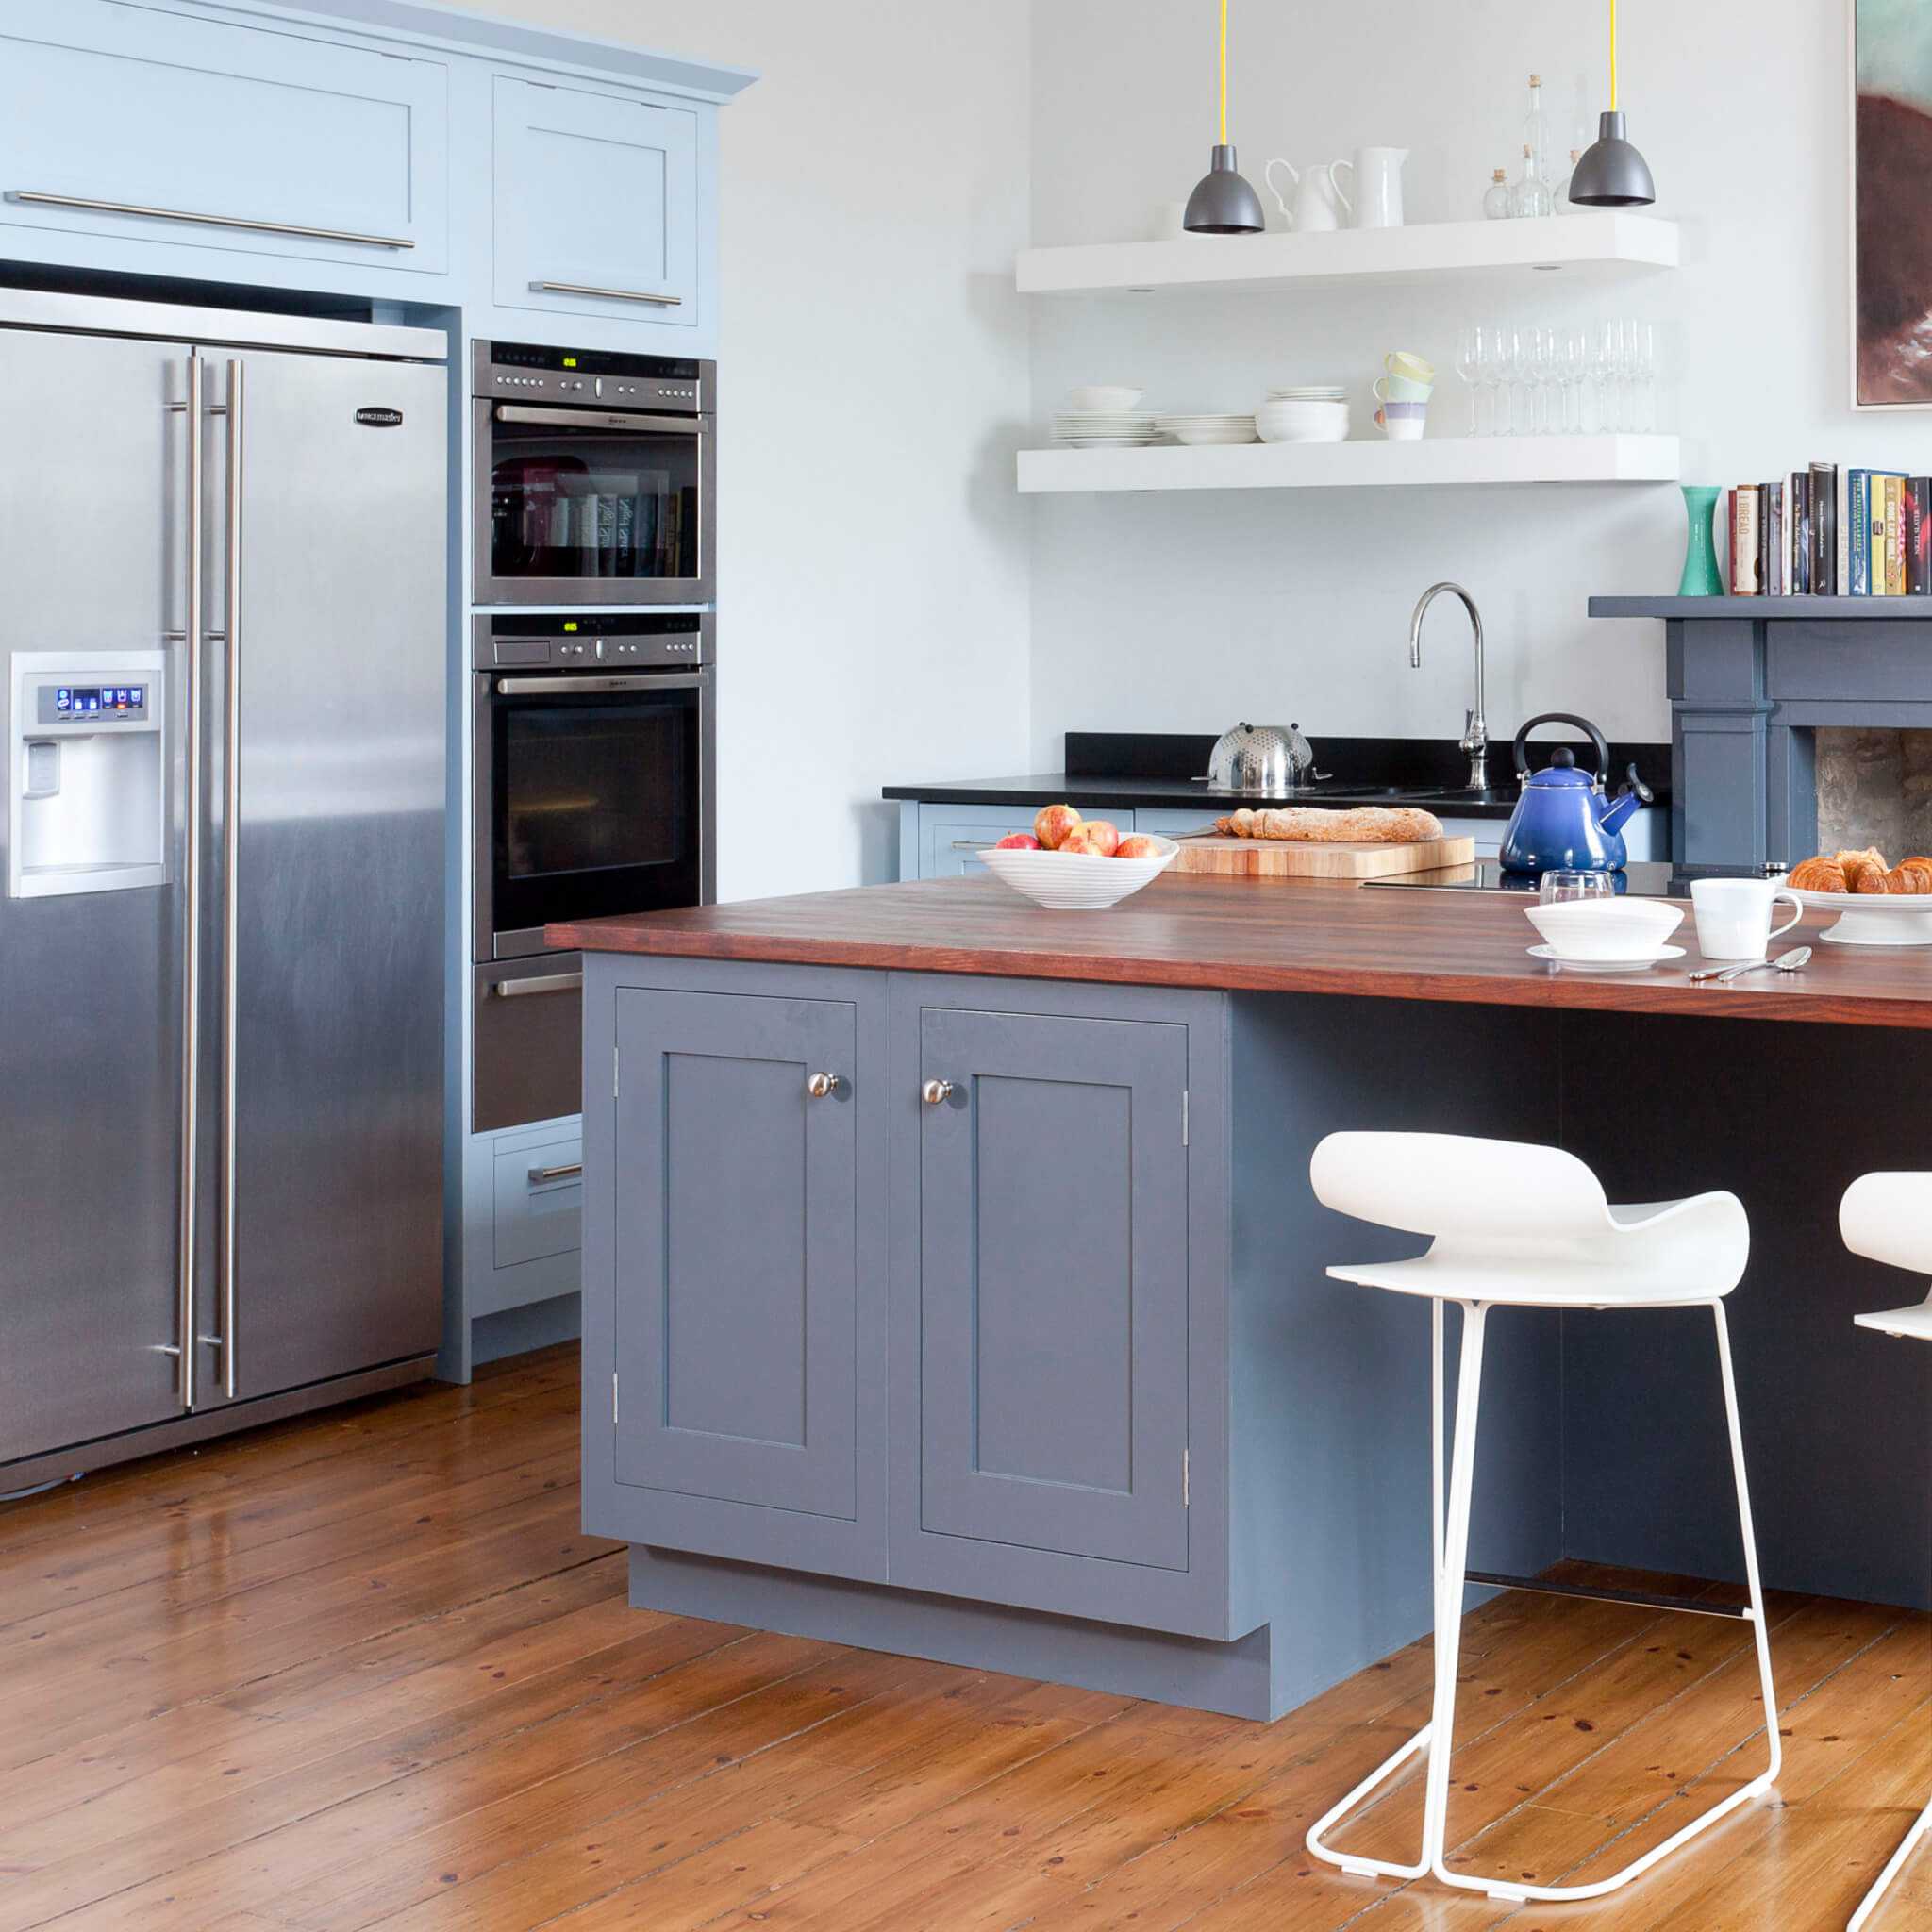 Choosing Flooring For Your Kitchen Tips & Advice